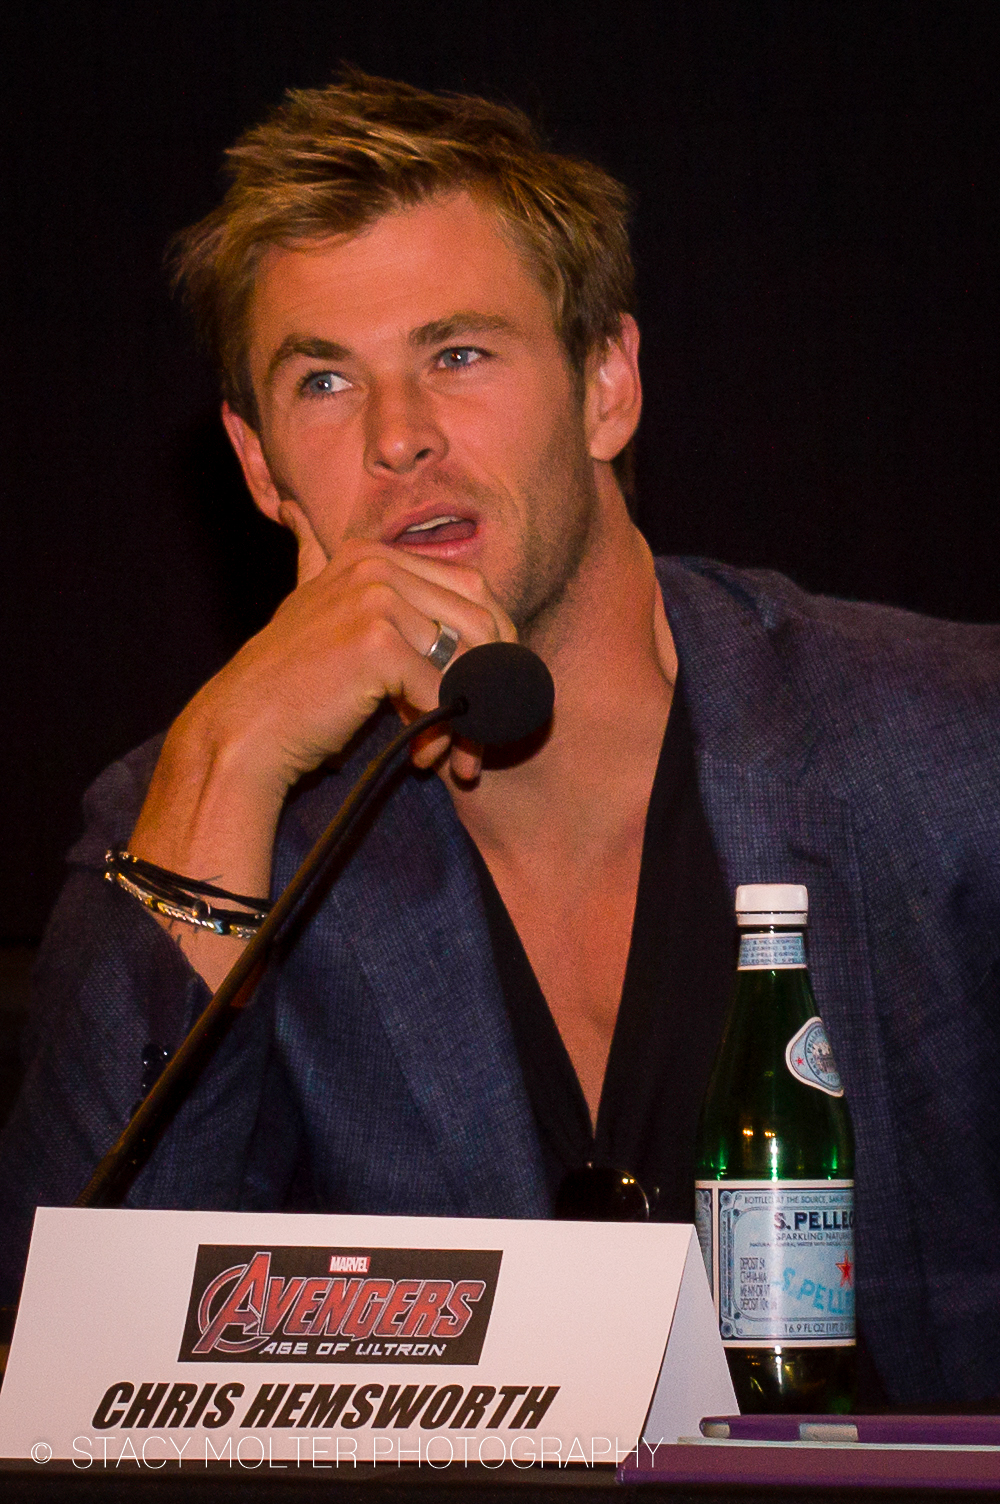 Chris Hemsworth - Avengers Age of Ultron Press Conference Junket